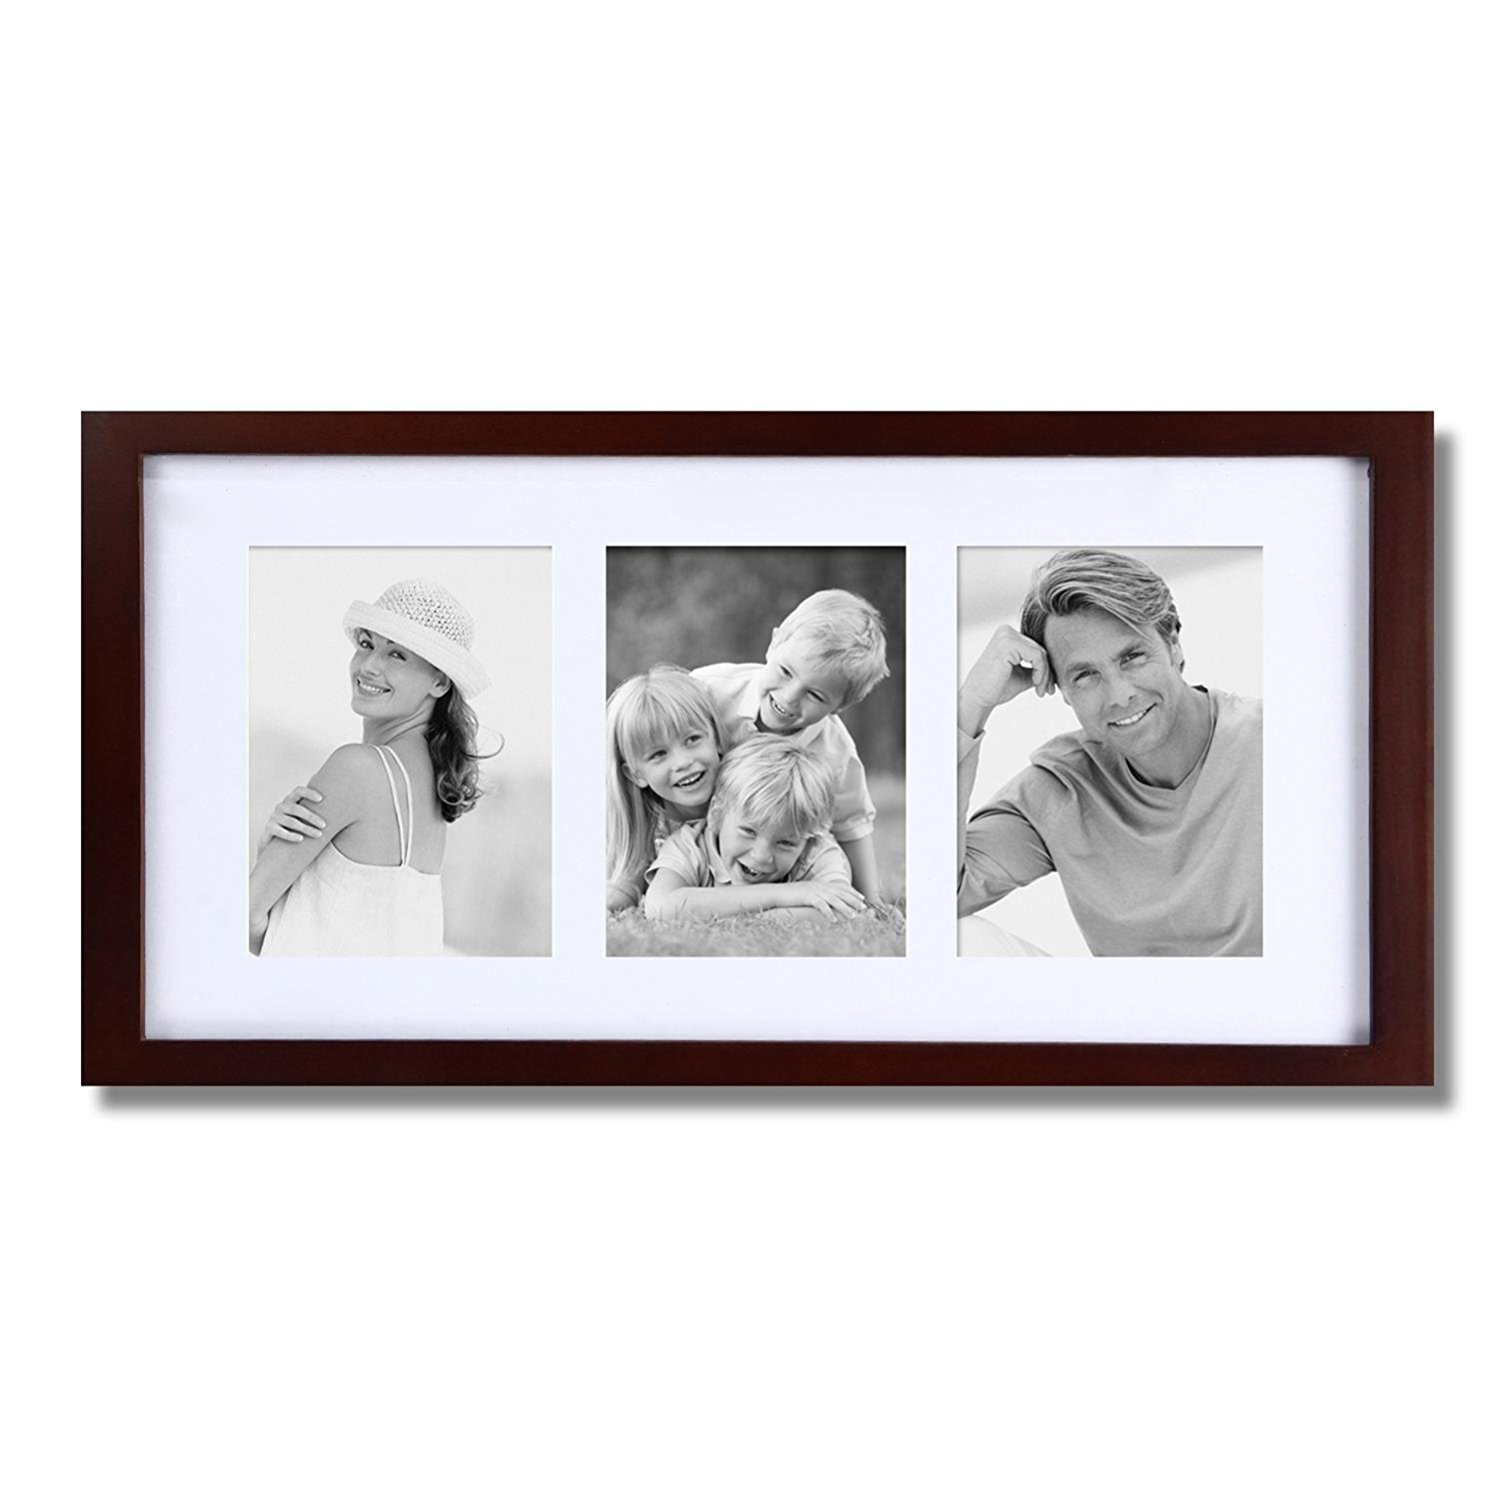 Cheap Collage Frames For 4x6 Photos, find Collage Frames For 4x6 ...